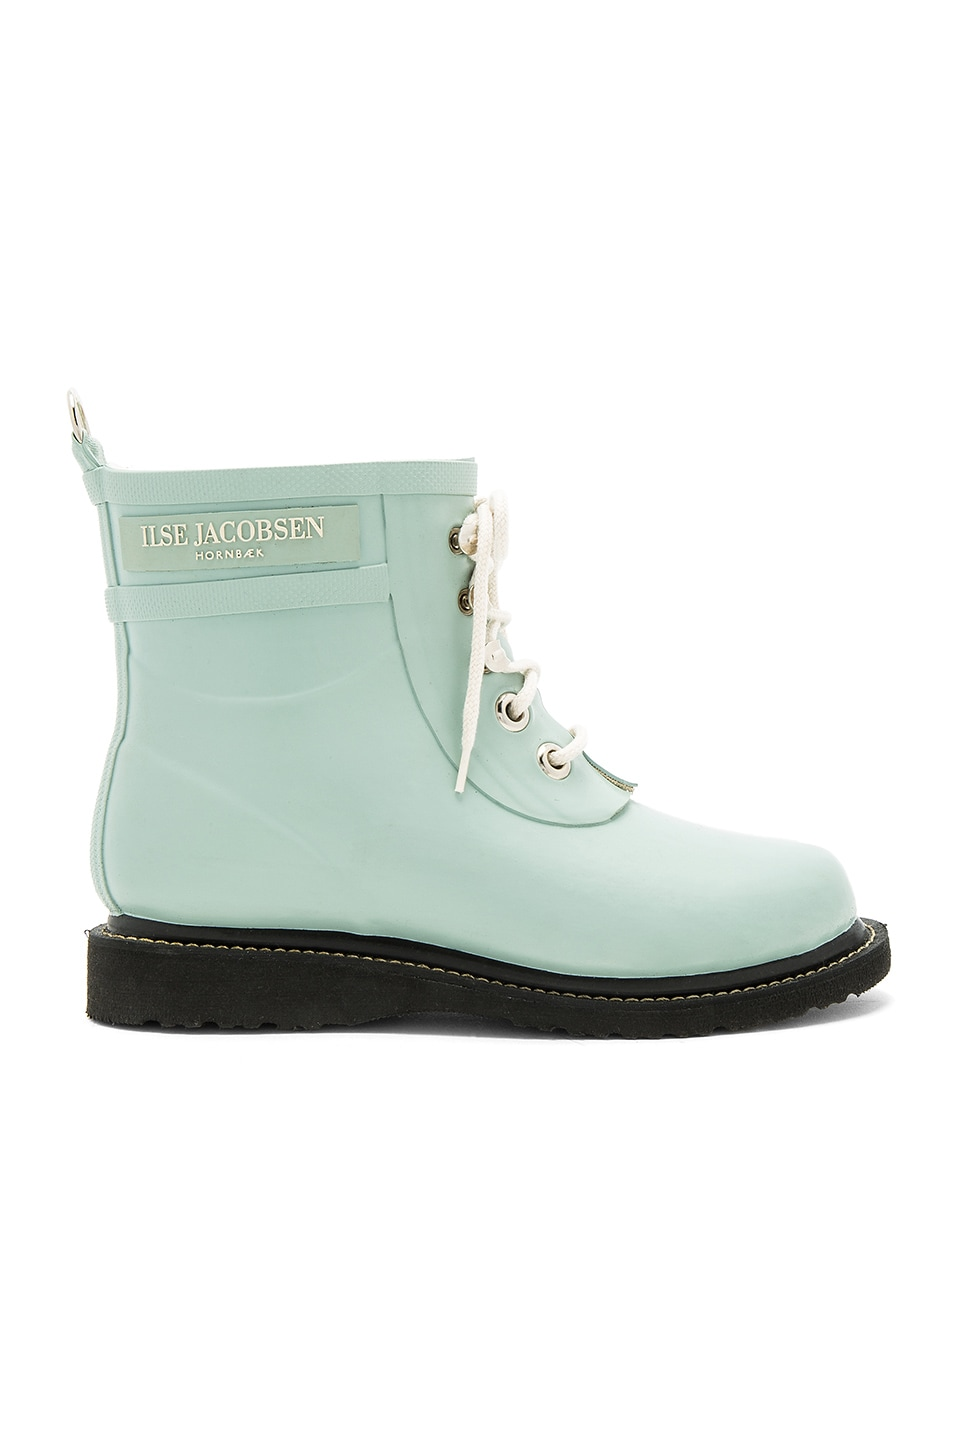 ILSE JACOBSEN Short Rubber Boot in Blue Surf